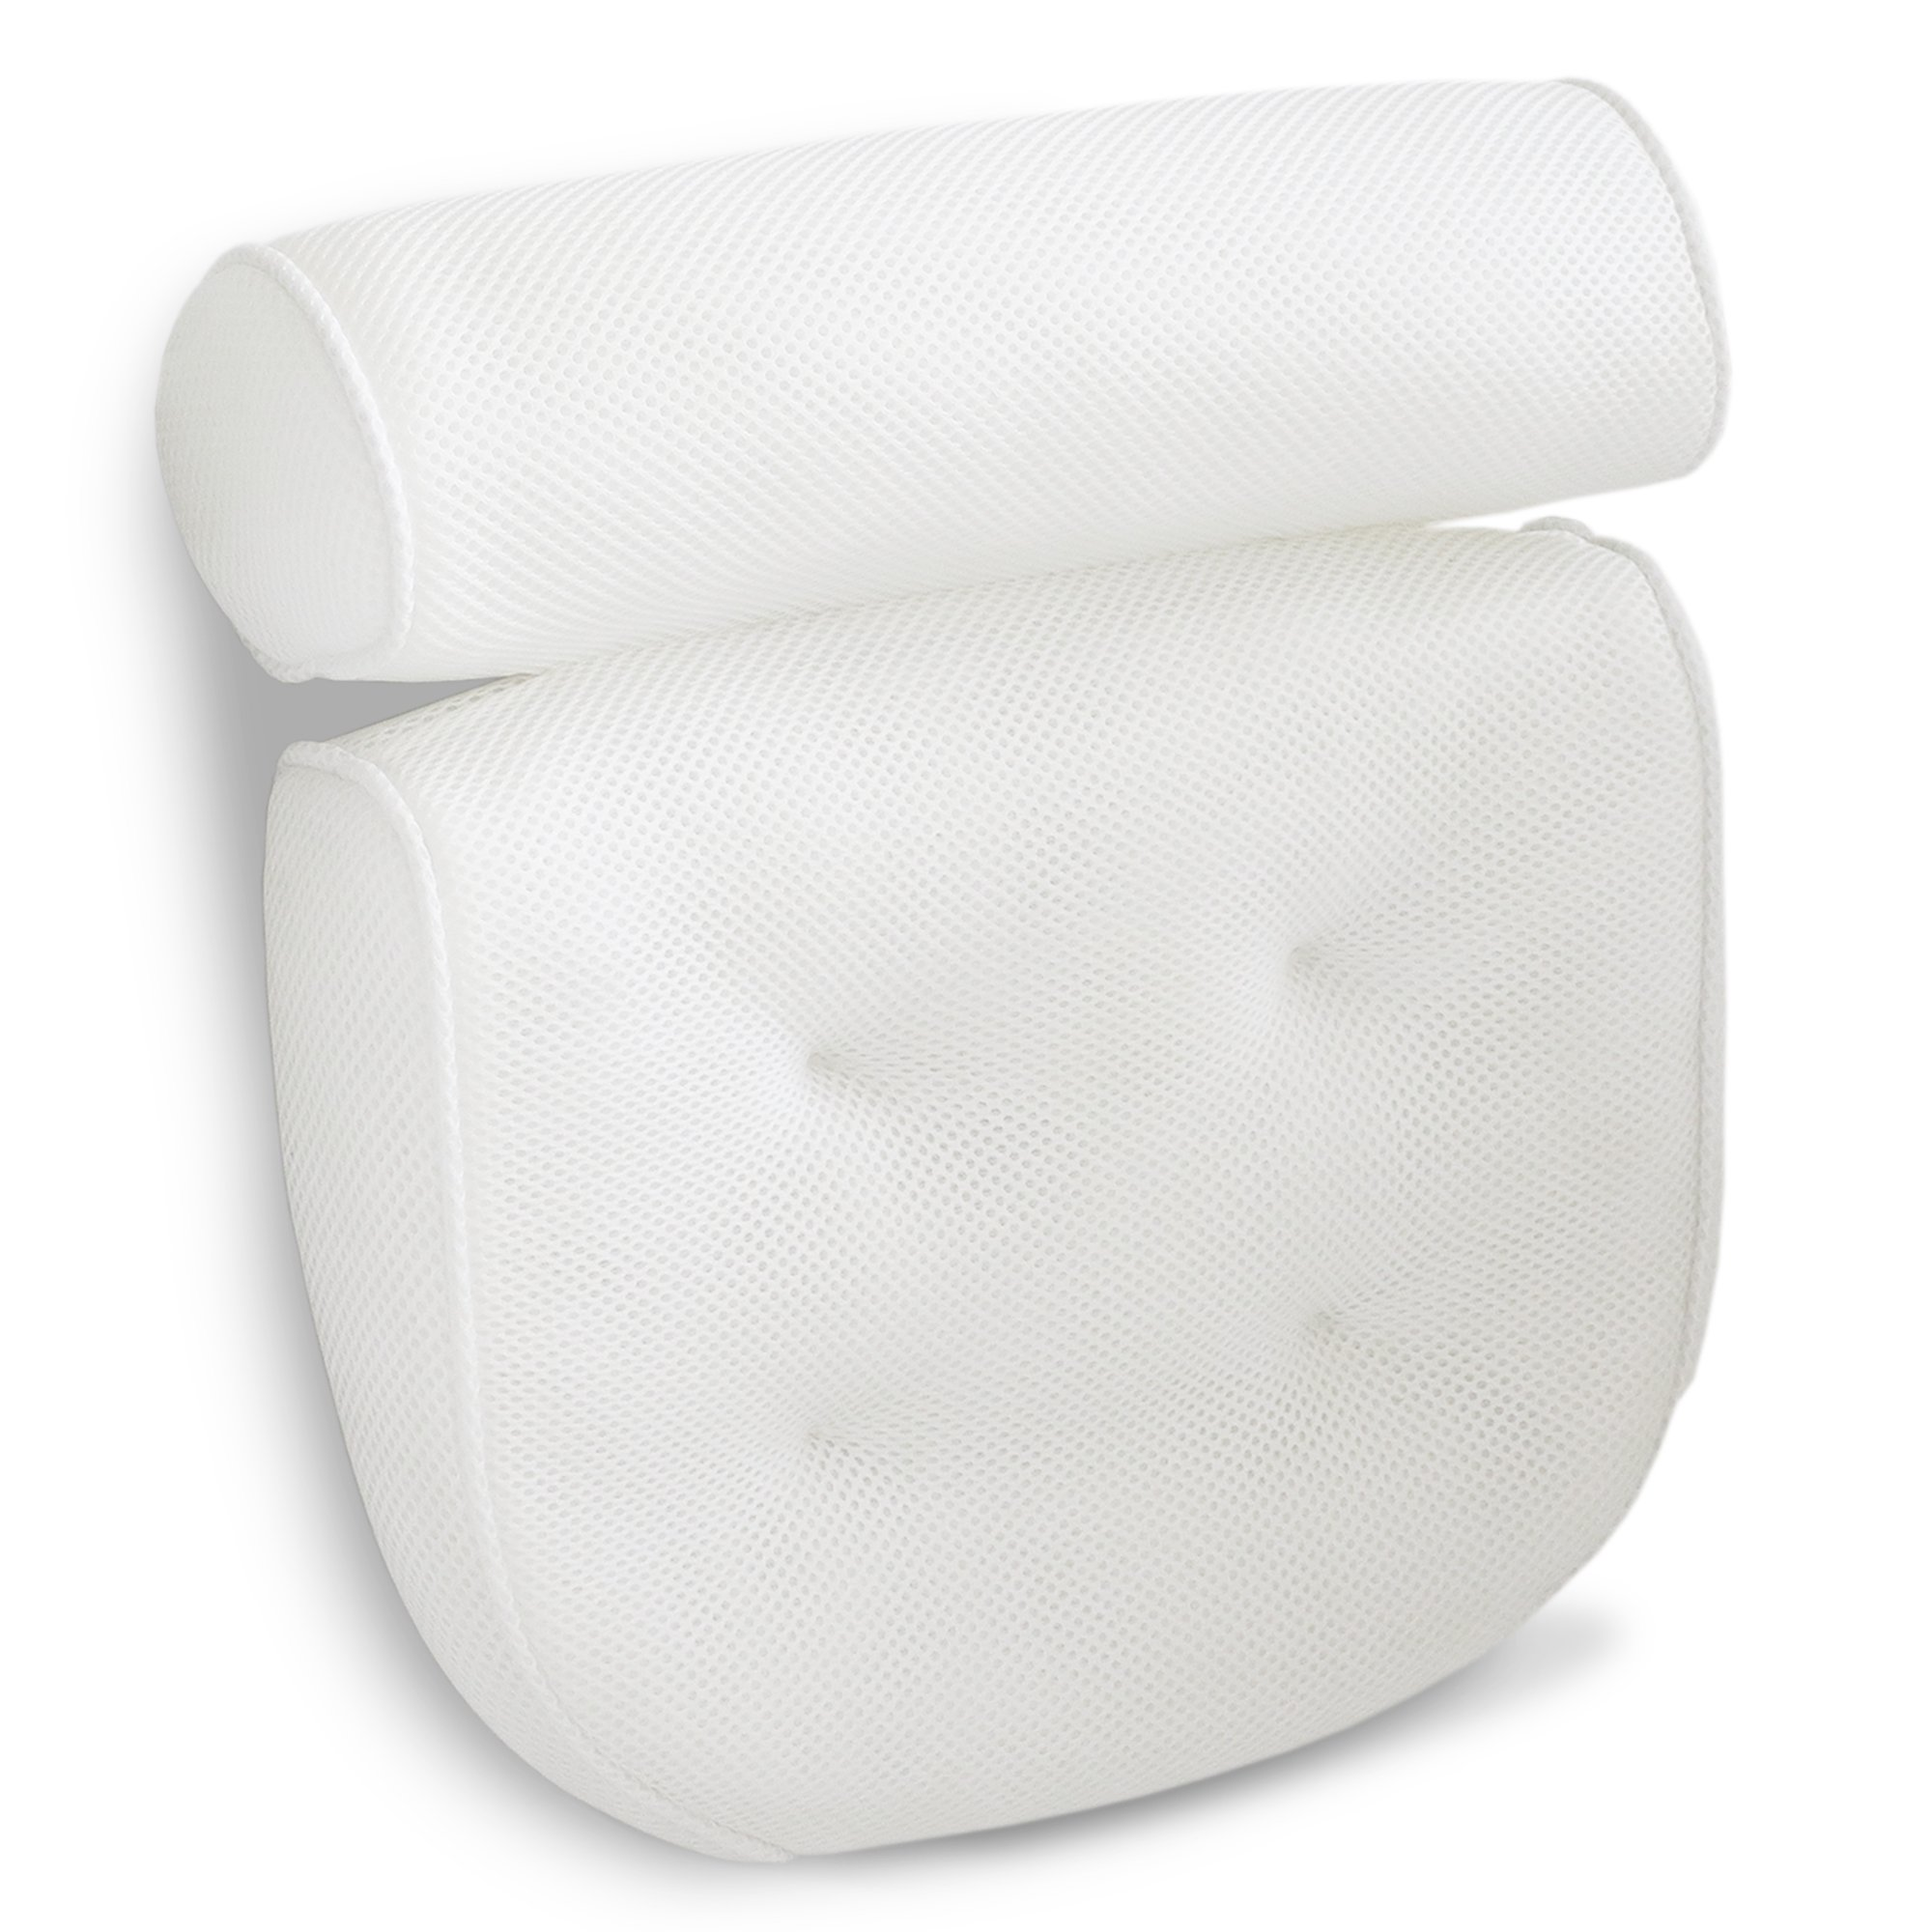 Viventive Luxury Spa Bath Pillow with Head, Neck, Shoulder and Back Support. Non-Slip, Extra Thick, Soft and Large 14x13in for the ultimate relaxation experience. Fits any tub and is Anti-Bacterial